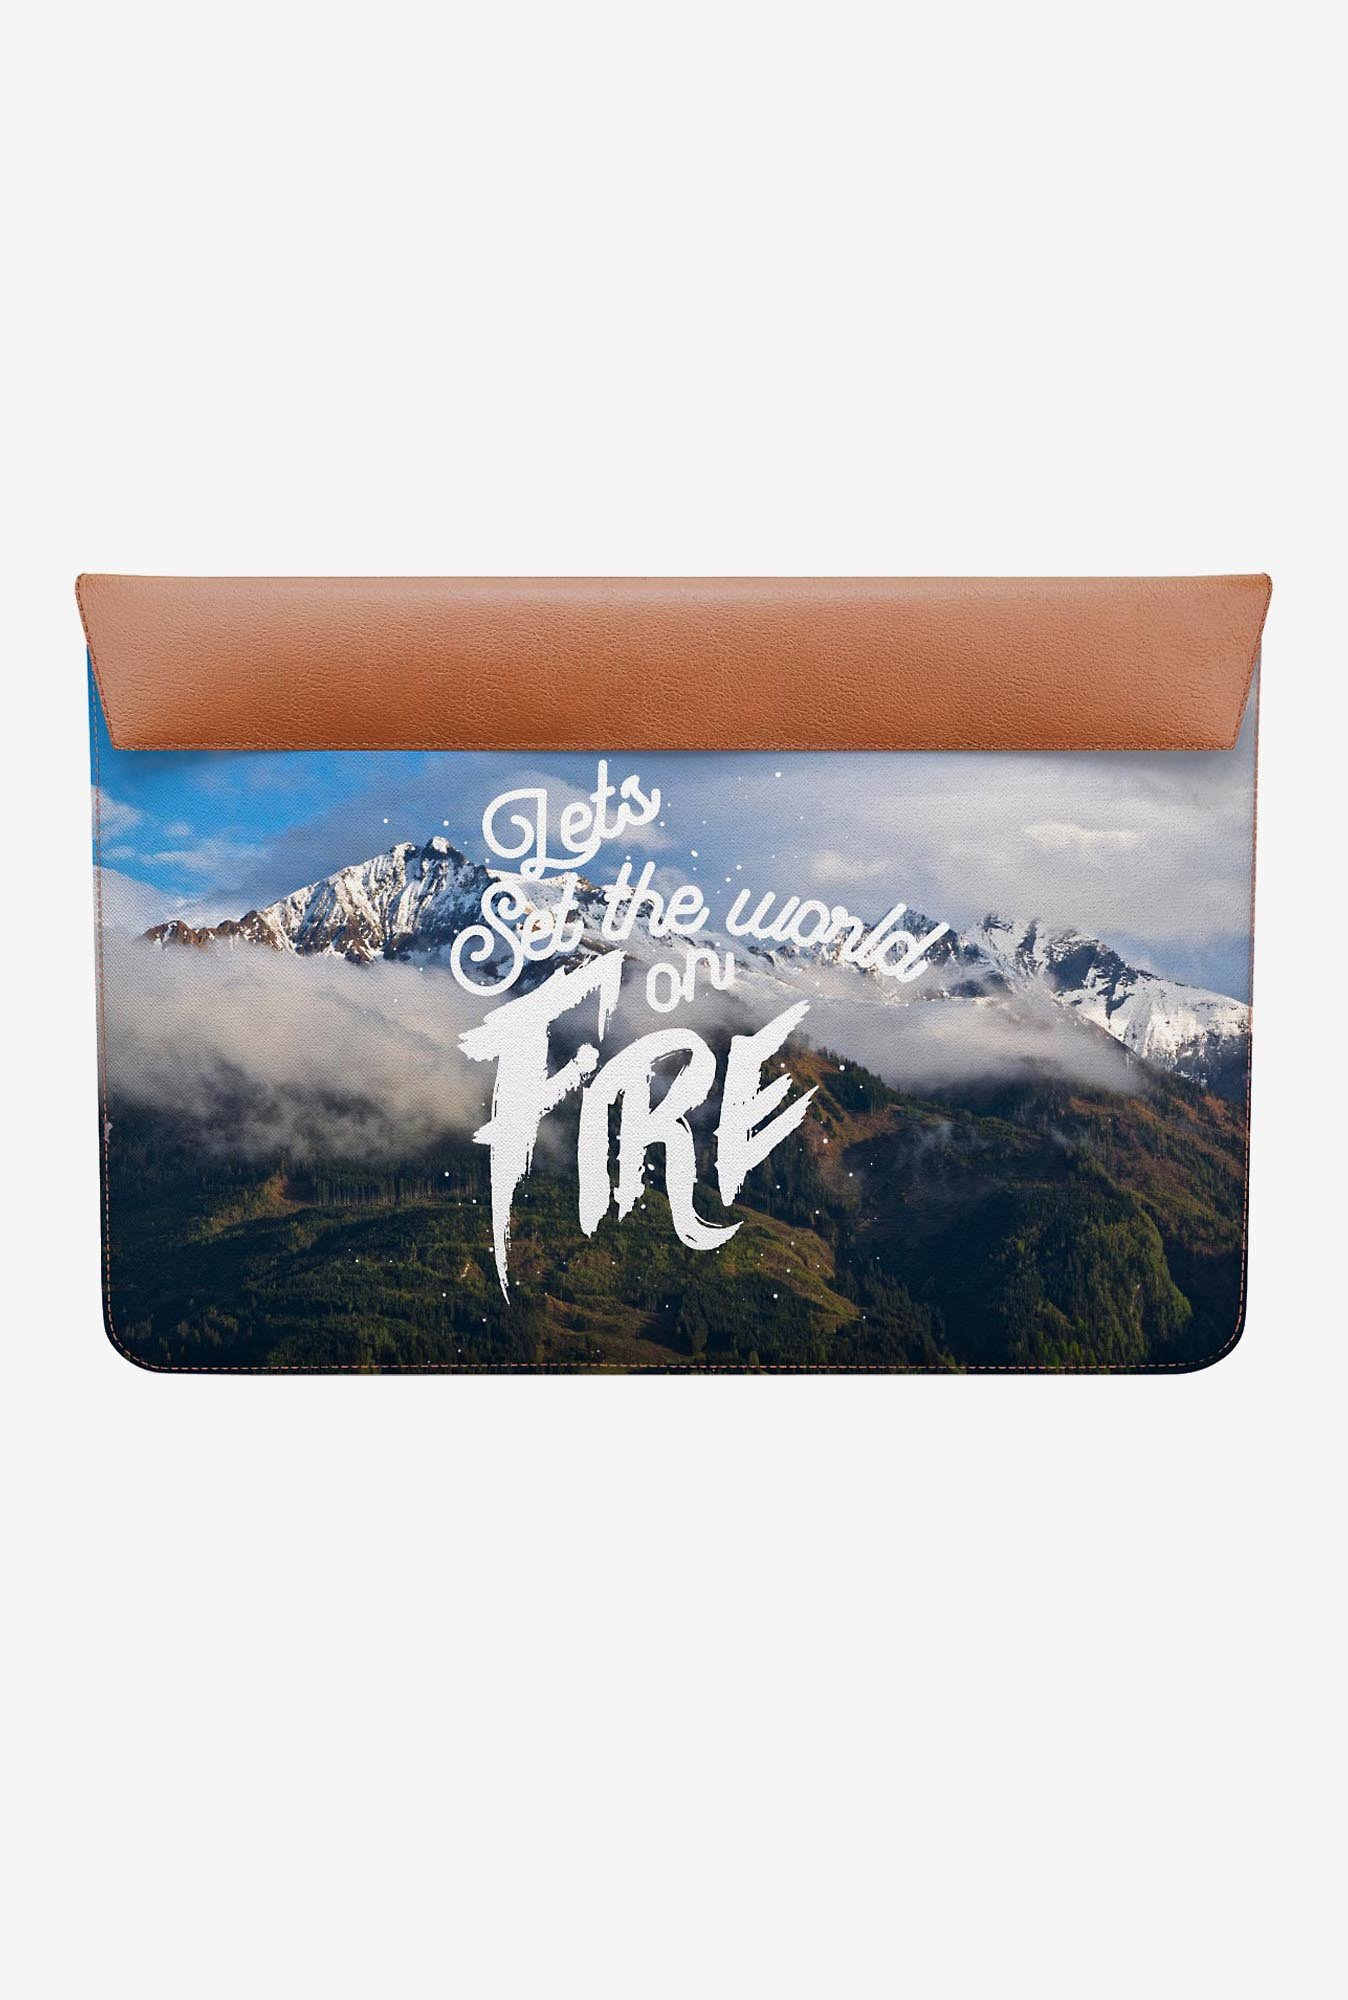 DailyObjects Set World Fire MacBook Air 11 Envelope Sleeve